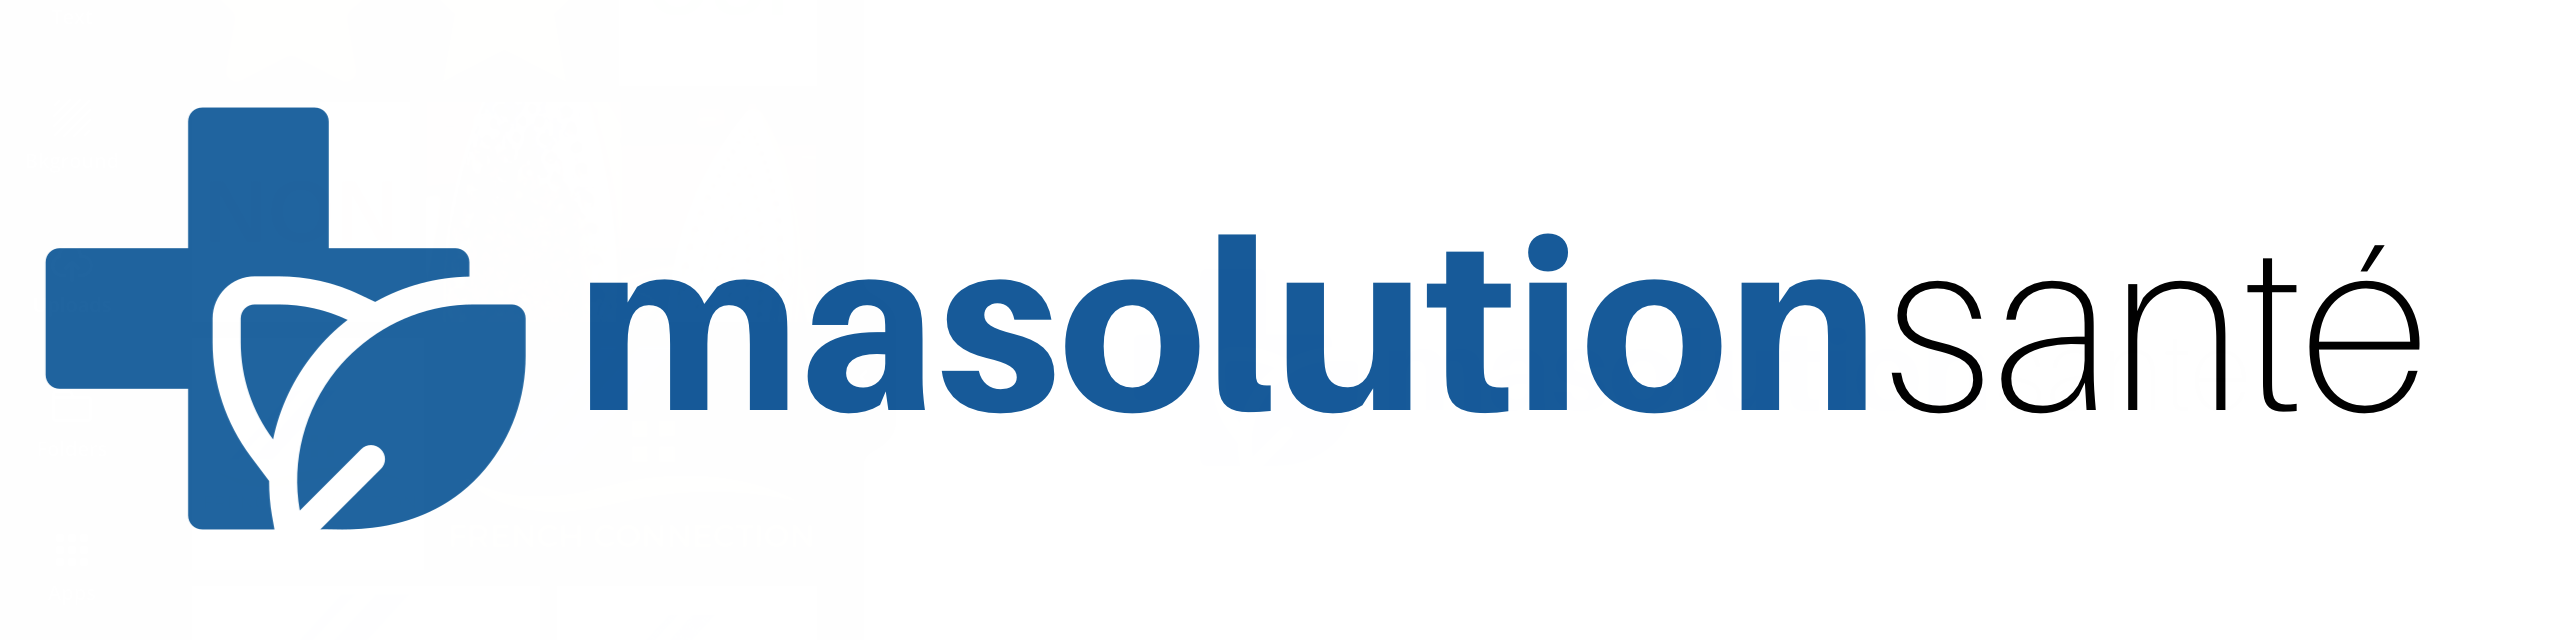 logo masolutionsante